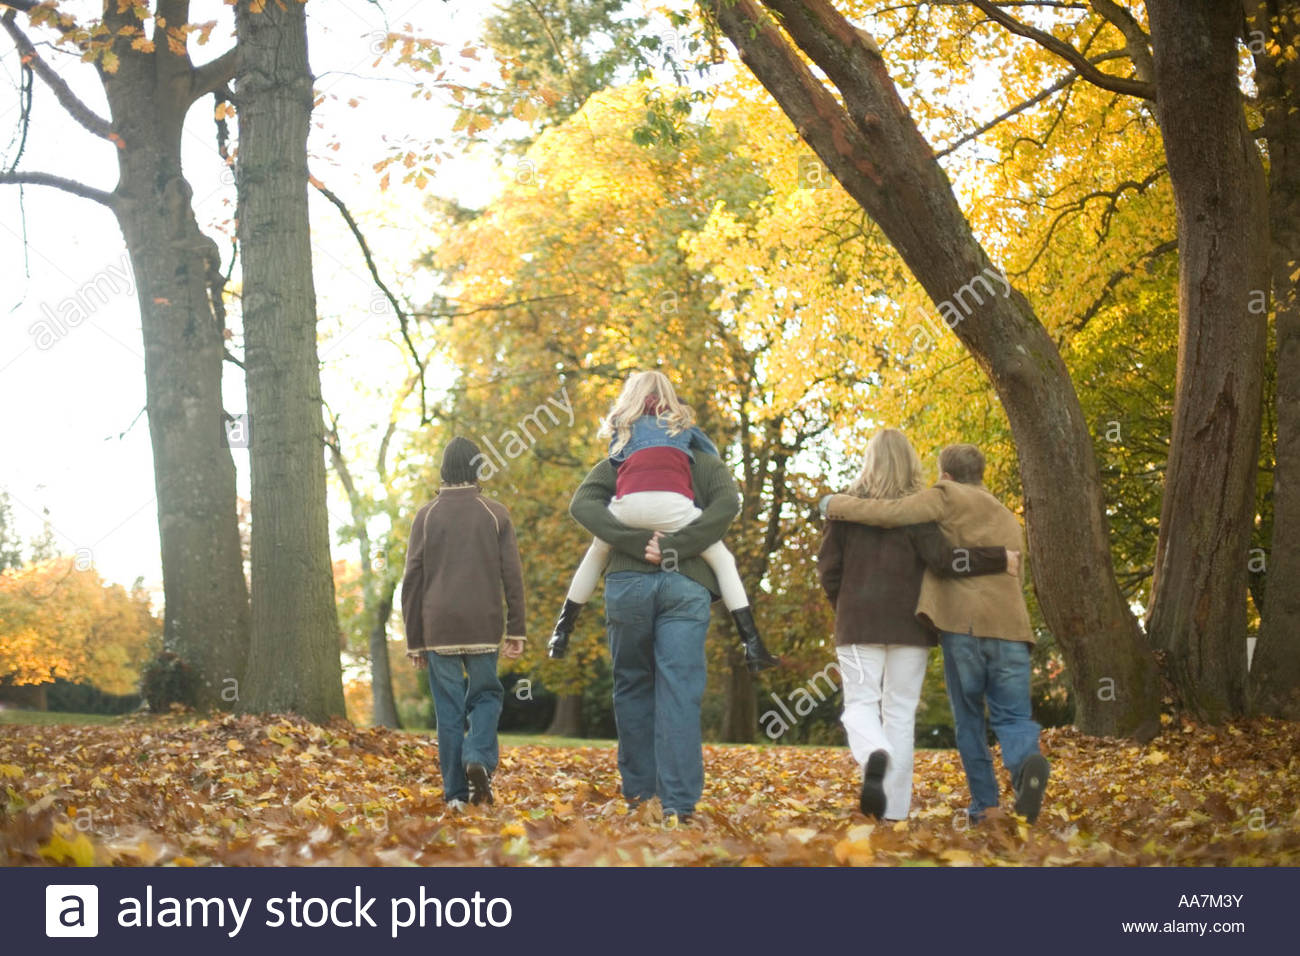 Family walking outdoors in autumn - Stock Image